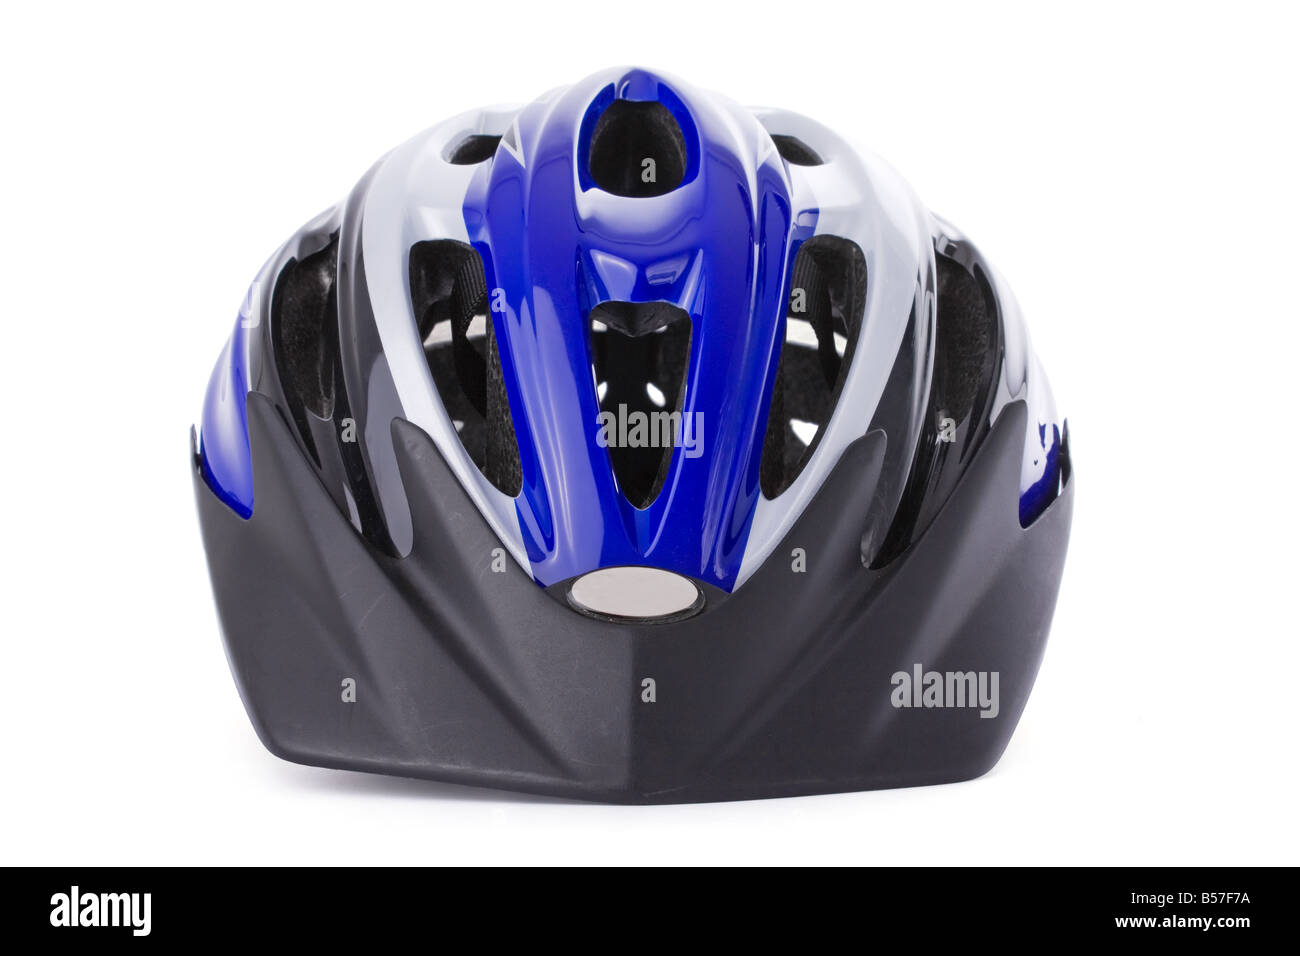 Cycling helmet isolated on white background /// bike bicycle cut out cutout equipment mtb mountain biking head protection - Stock Image